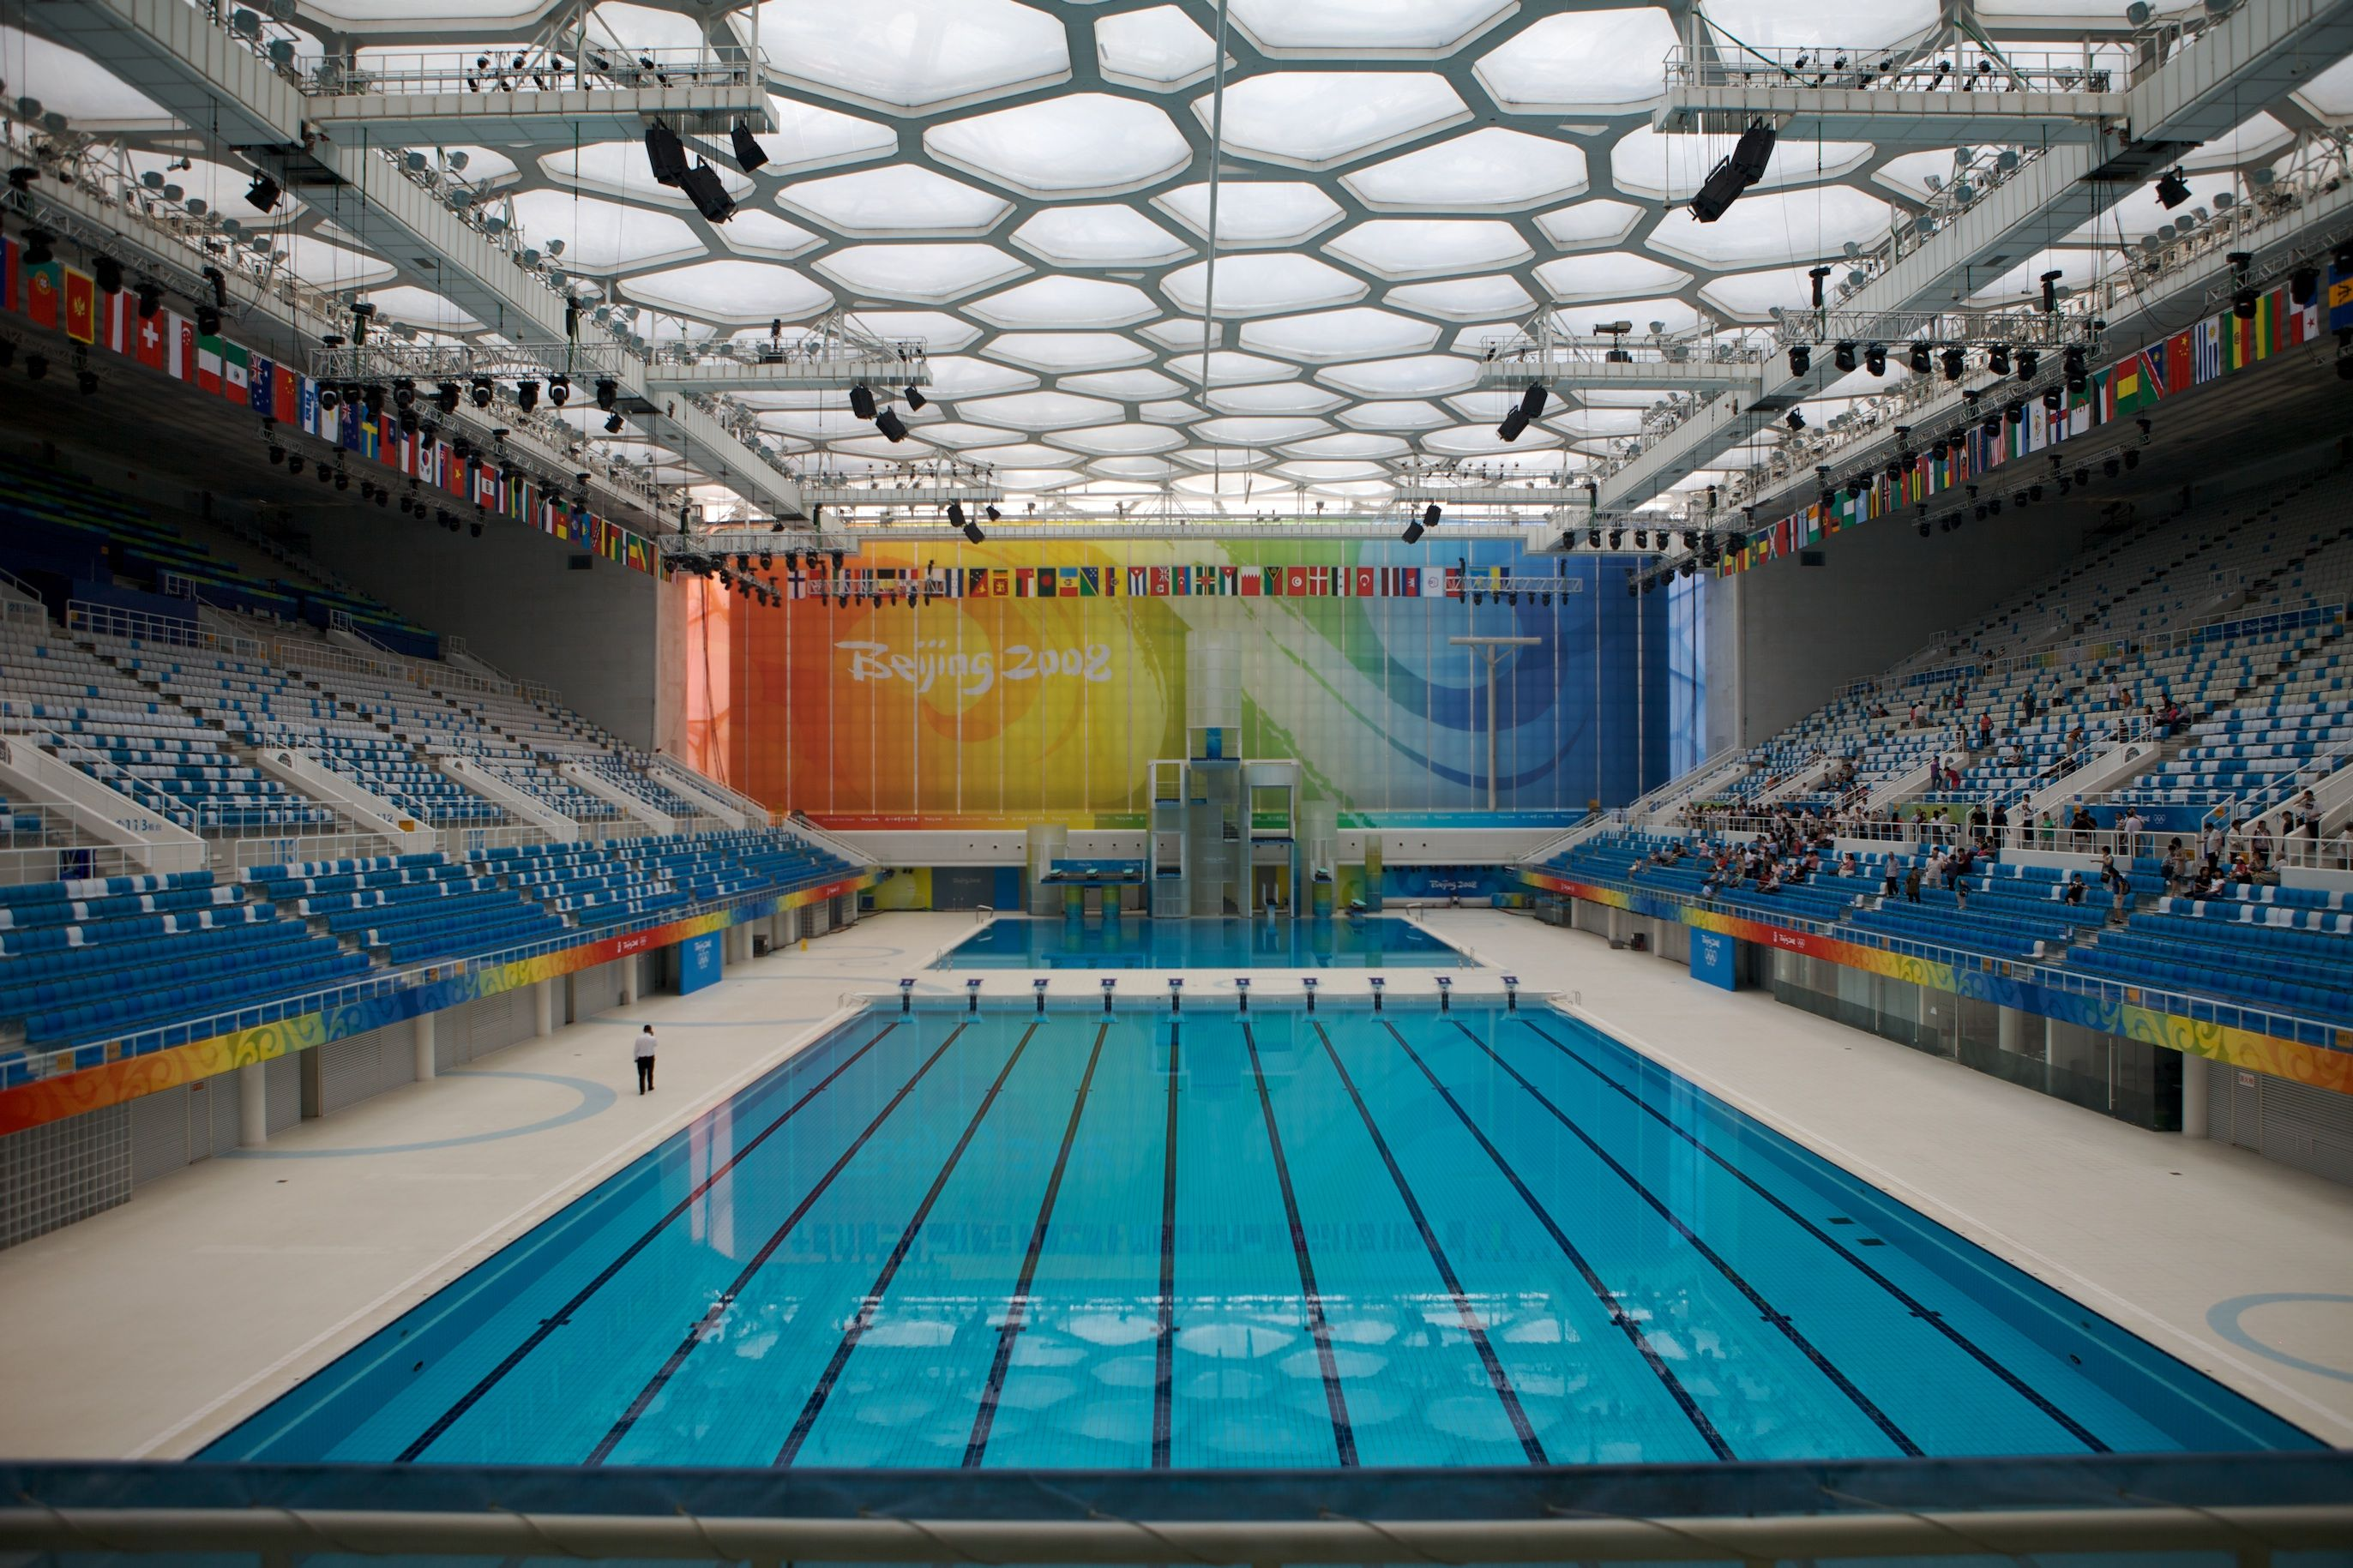 swimming pools - Olympic Swimming Pool 2014